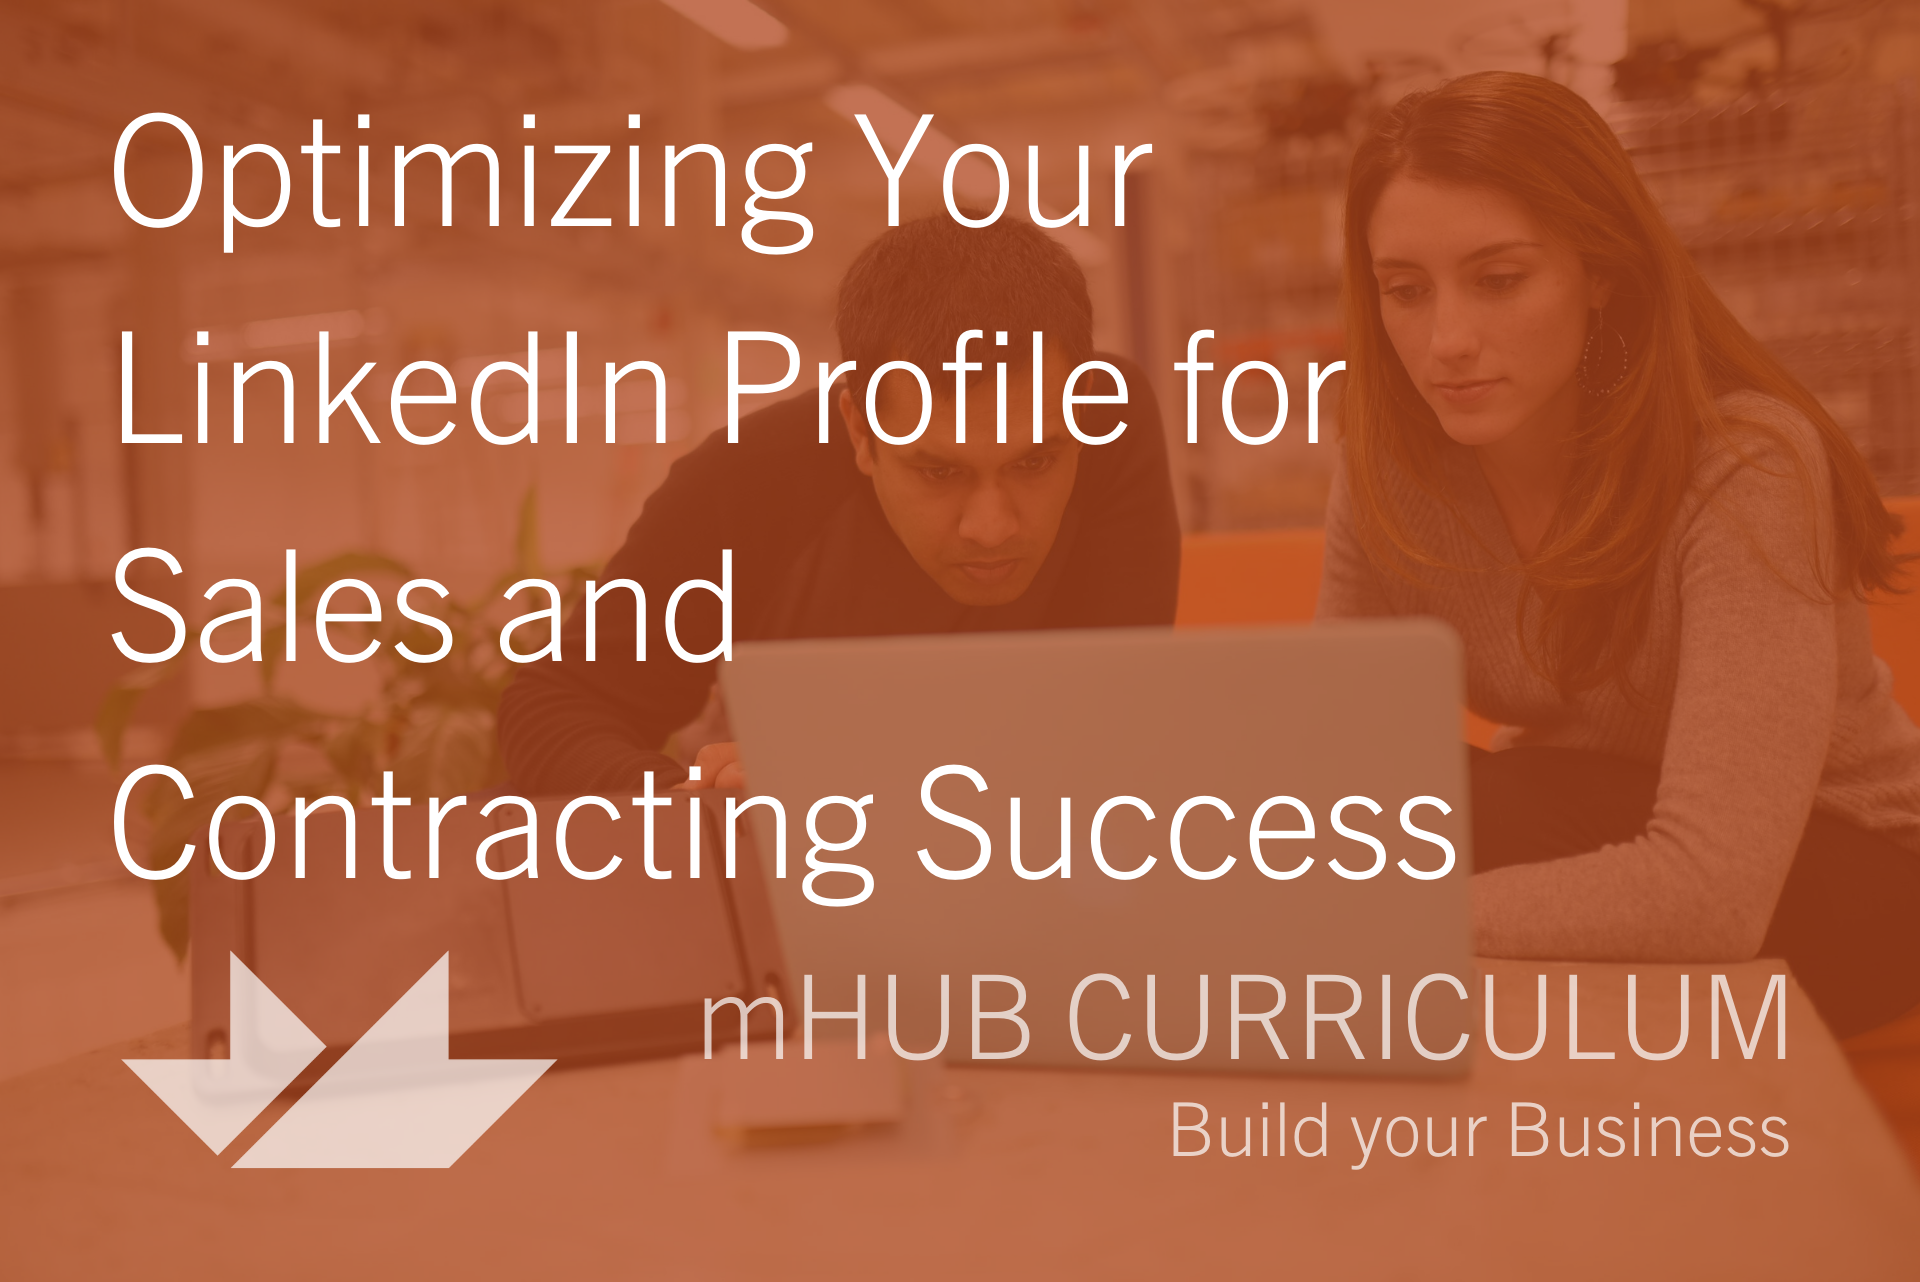 Optimizing Your LinkedIn Profile for Sales and Contracting Success